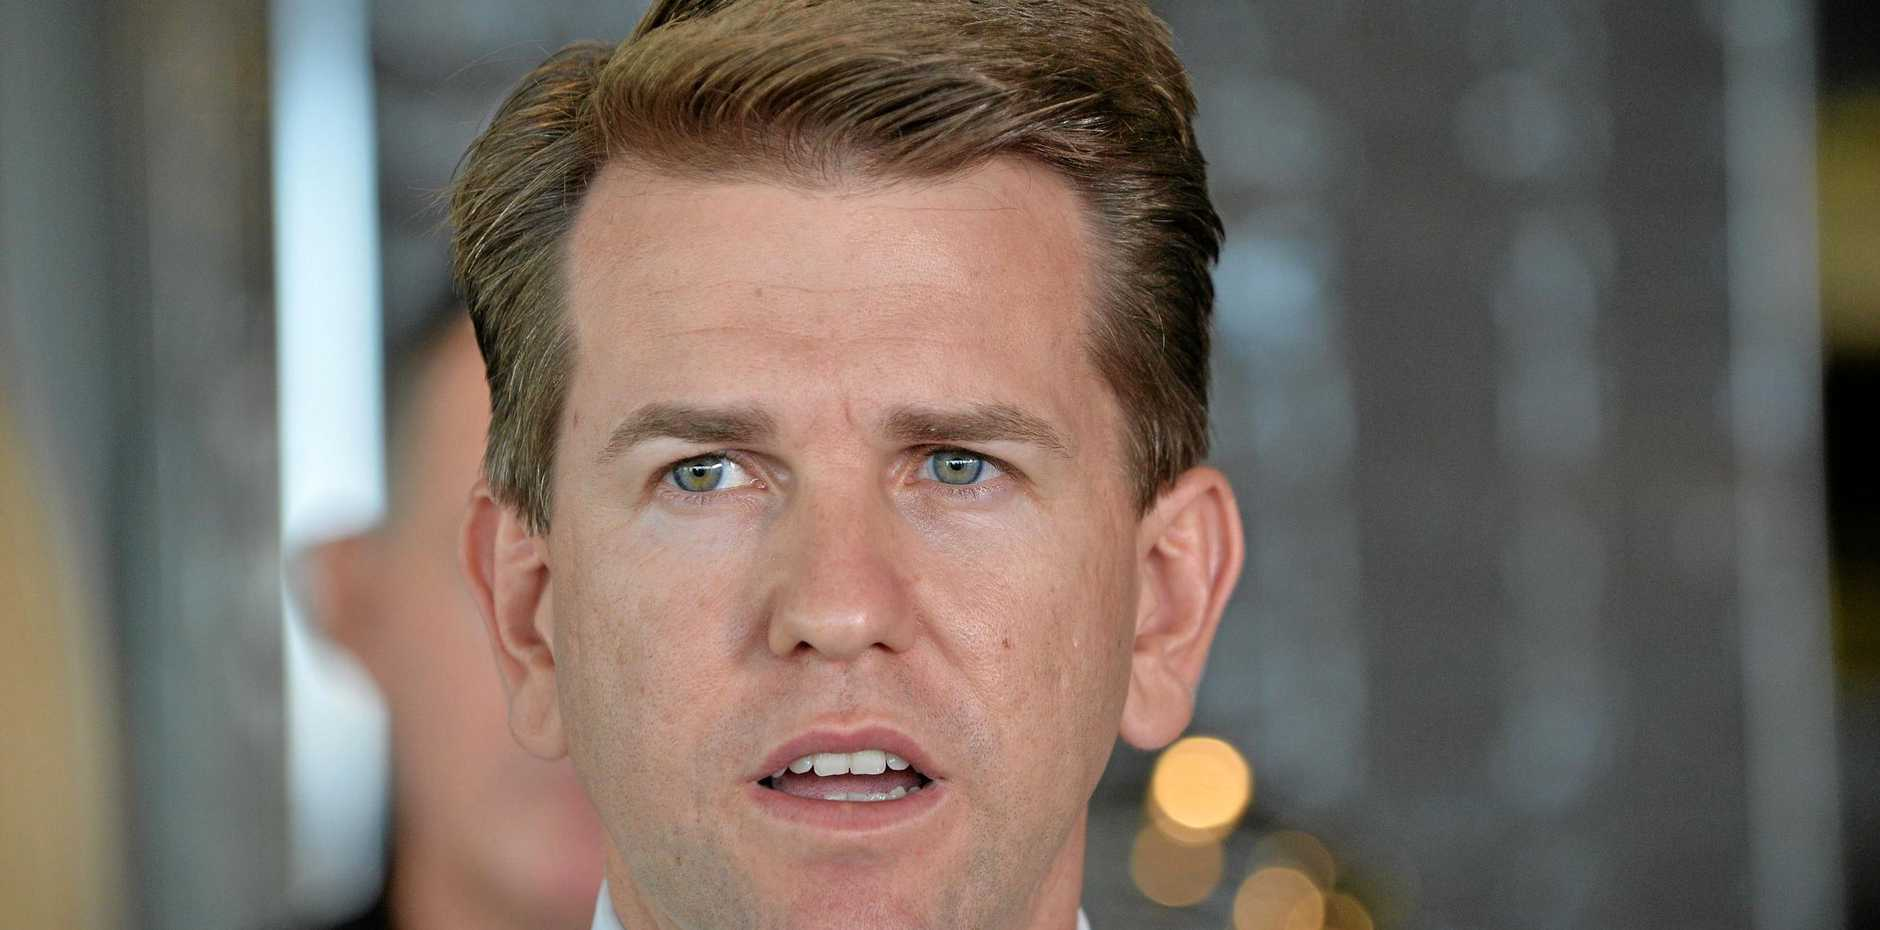 KAWANA MP Jarrod Bleijie says Labor took a $33,500 developer donation on the same day the Premier backed a ban from that source.